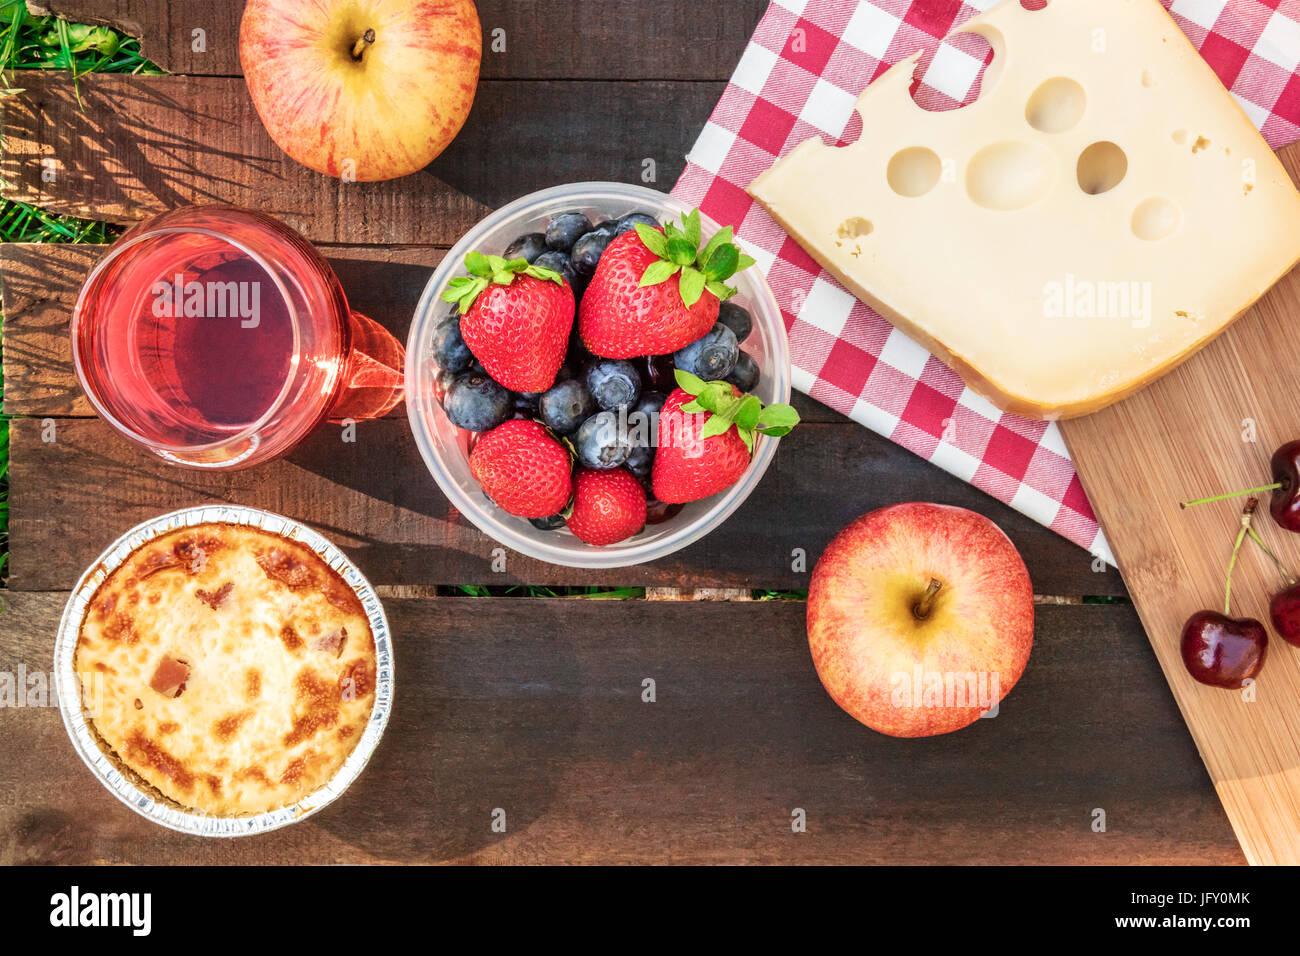 Overhead photo of picnic with apples, glass of rose wine, fresh fruit in plastic container, quiche, and piece of - Stock Image